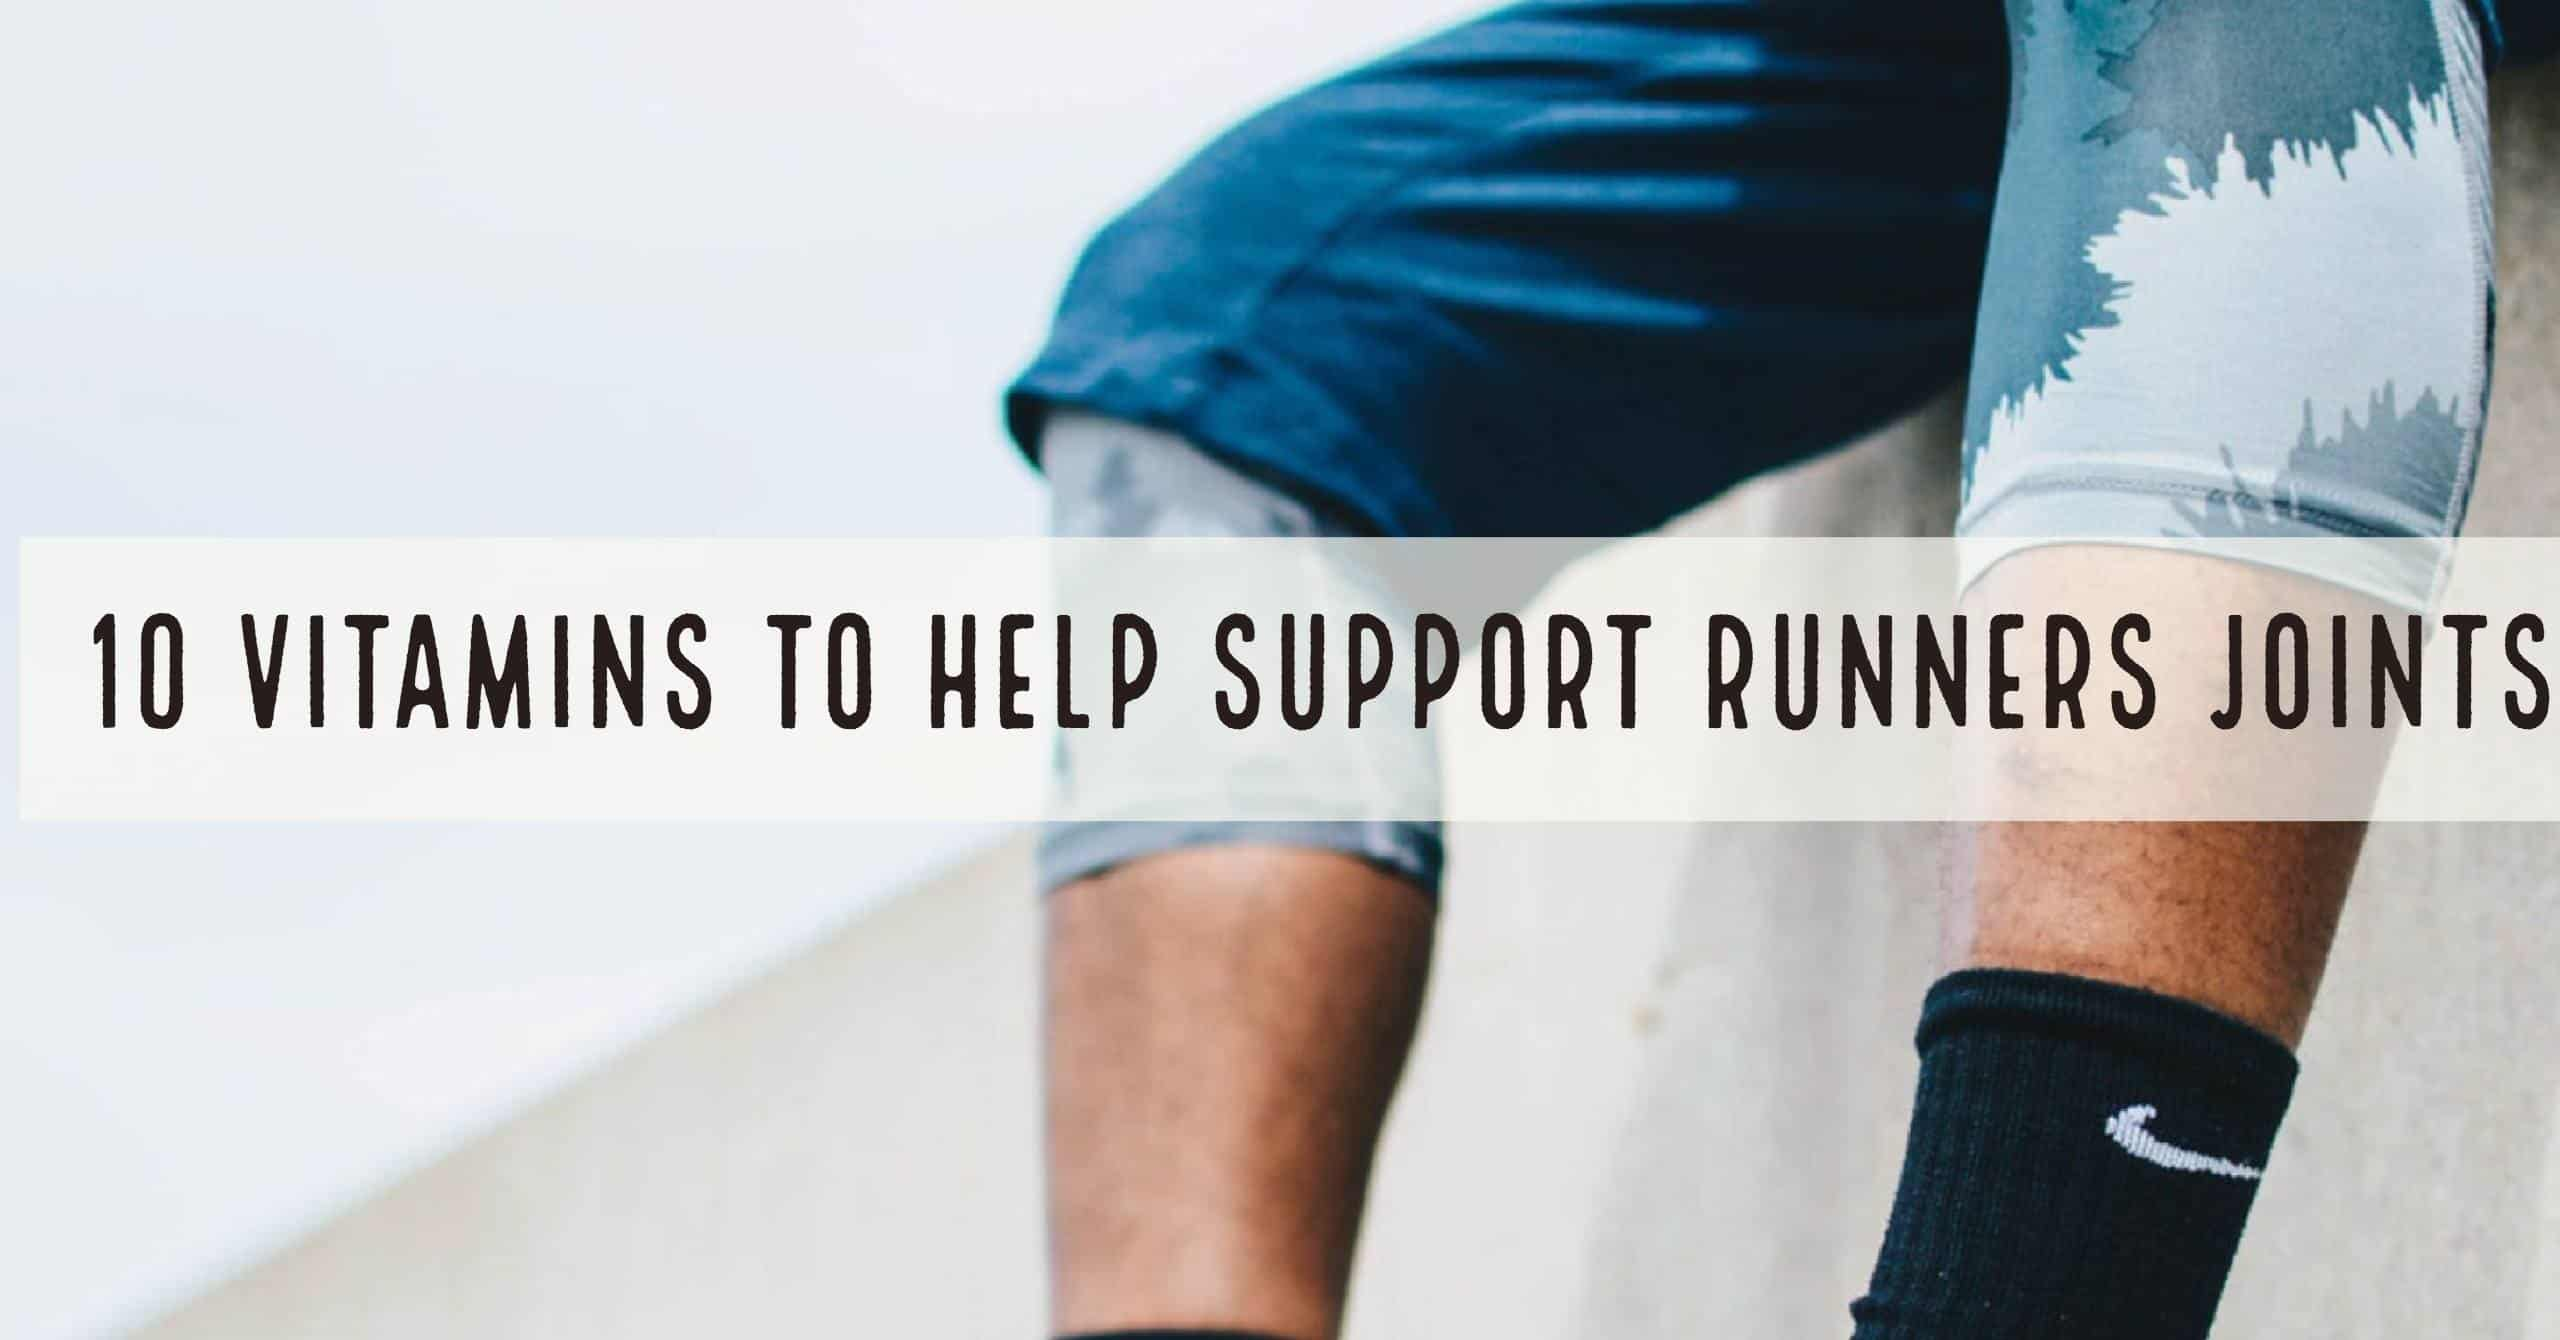 Individuals training for races, specifically longer ones such as marathons, commonly add supplements into their diet. Many runners experience joint pain as they prepare for a race. Here are the 10 best vitamins to help support runners joints.